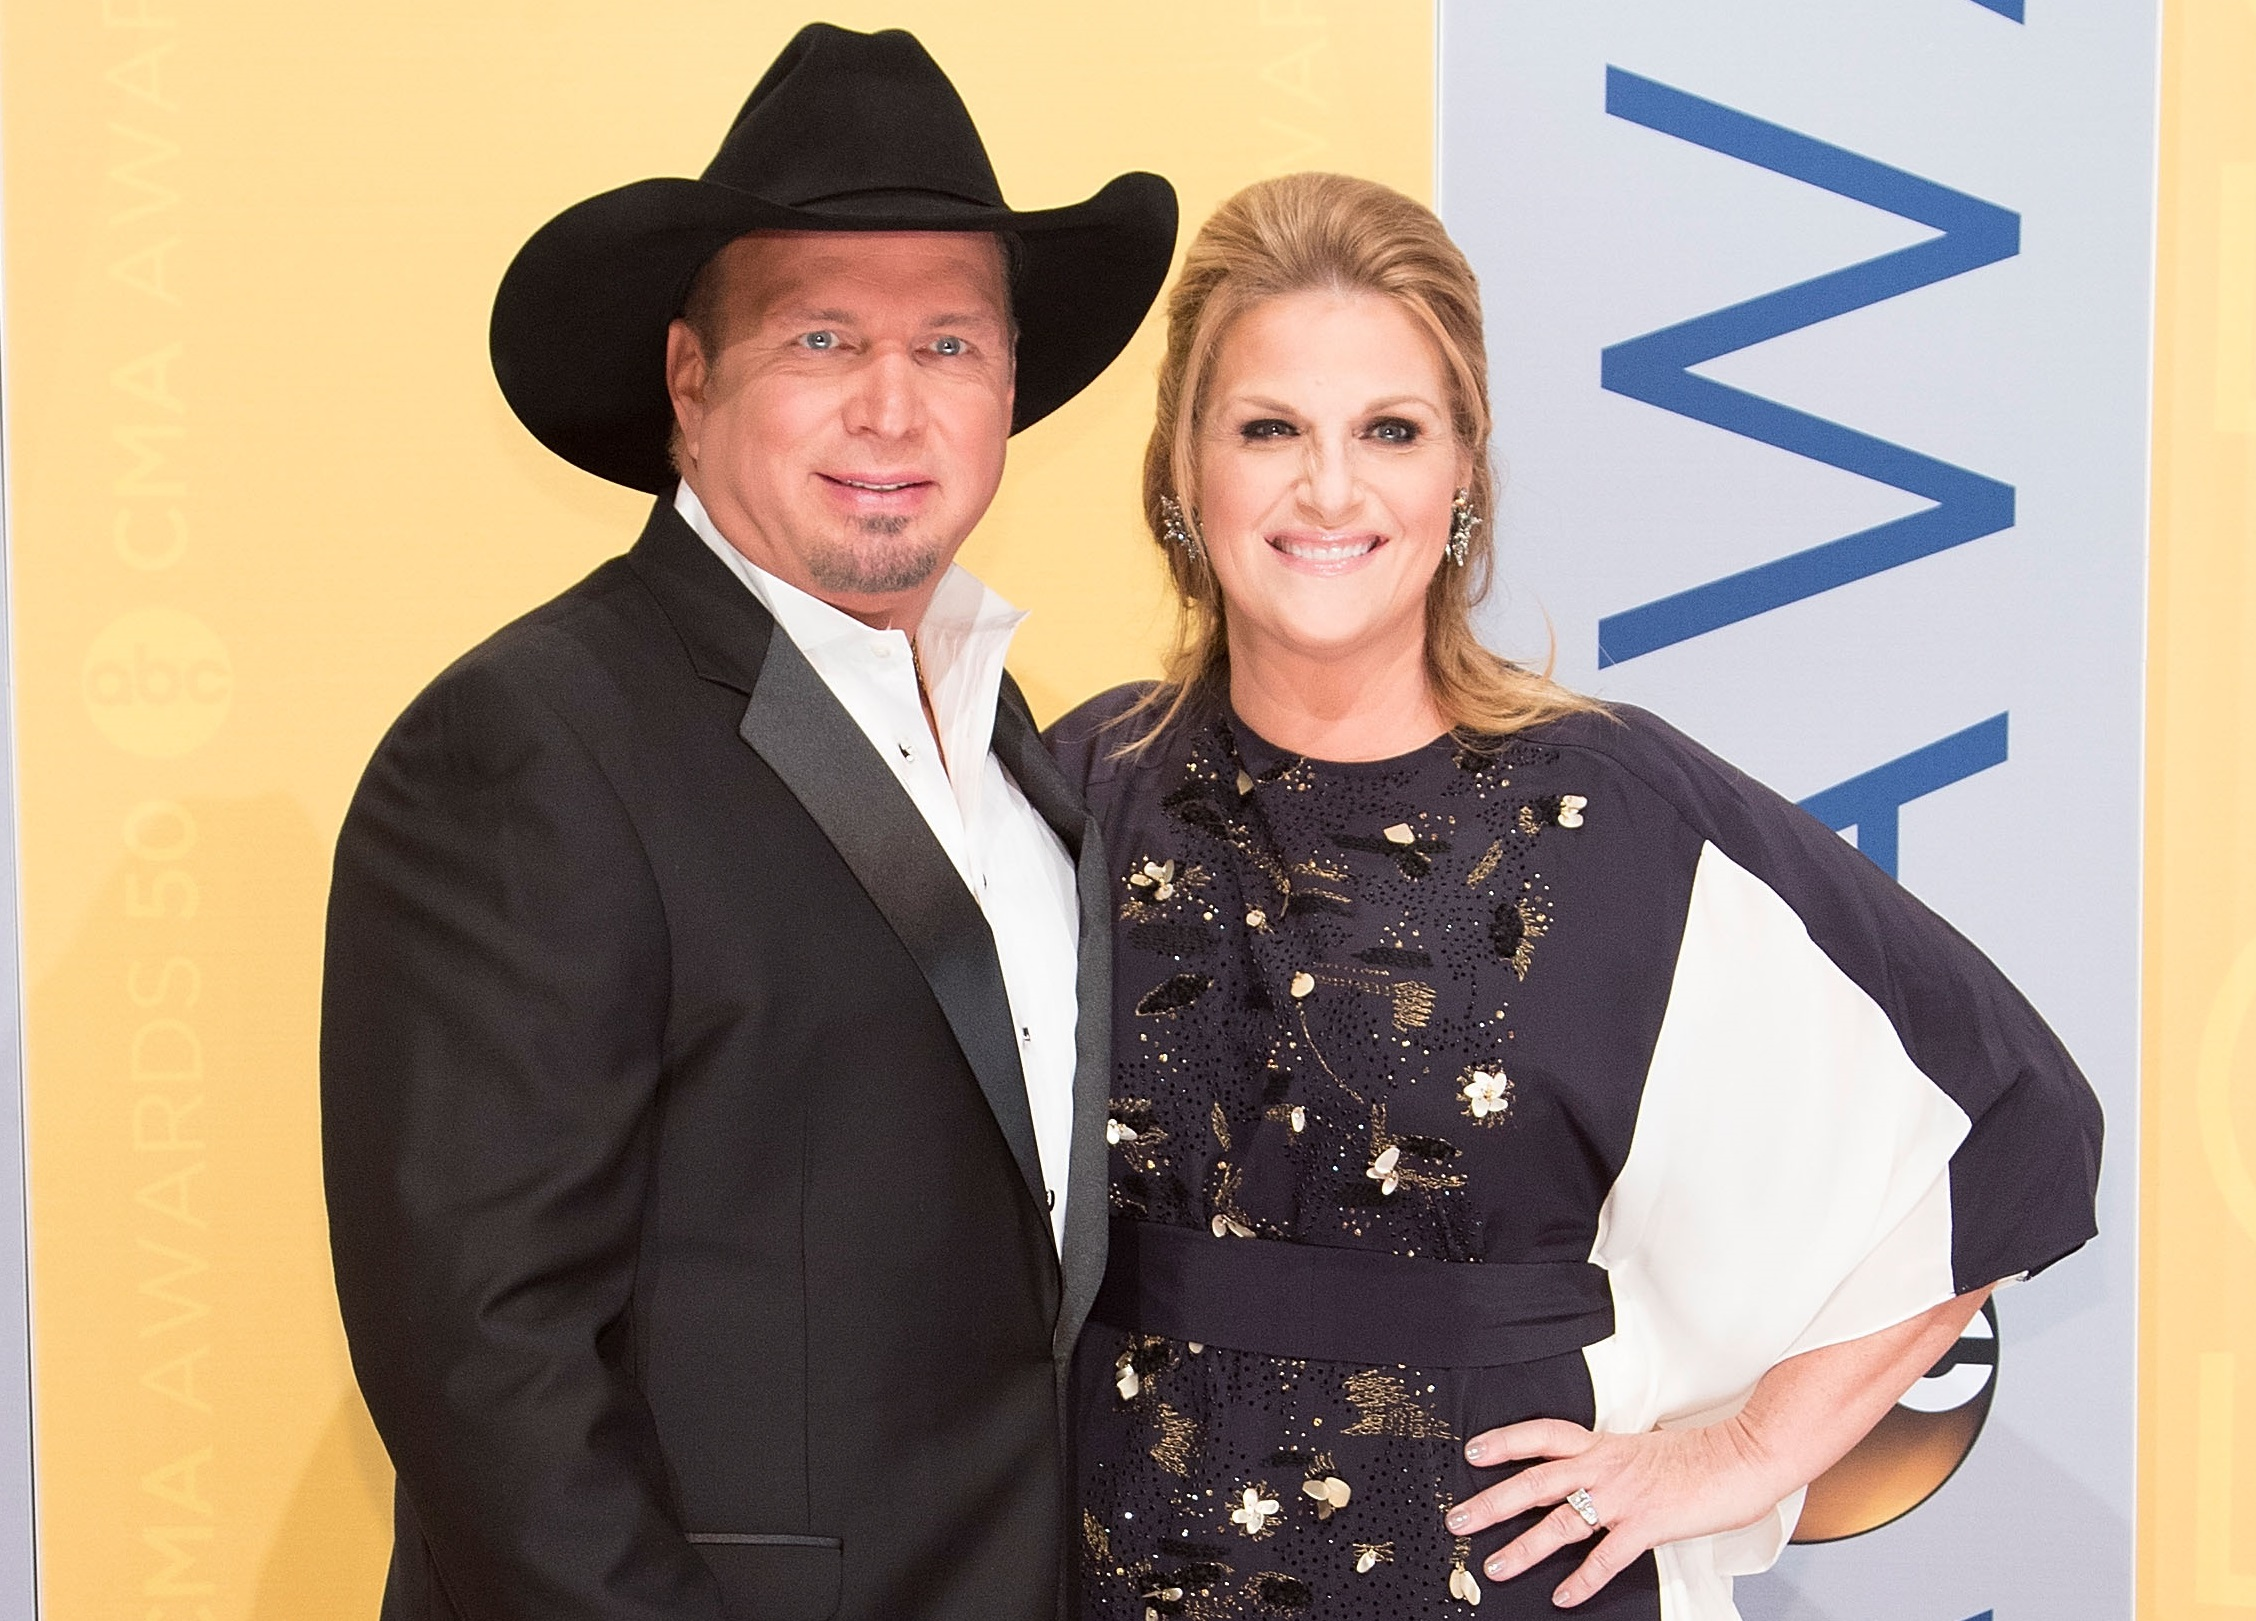 Trisha Yearwood And Garth Brooks Reveal Their Plans For 2018